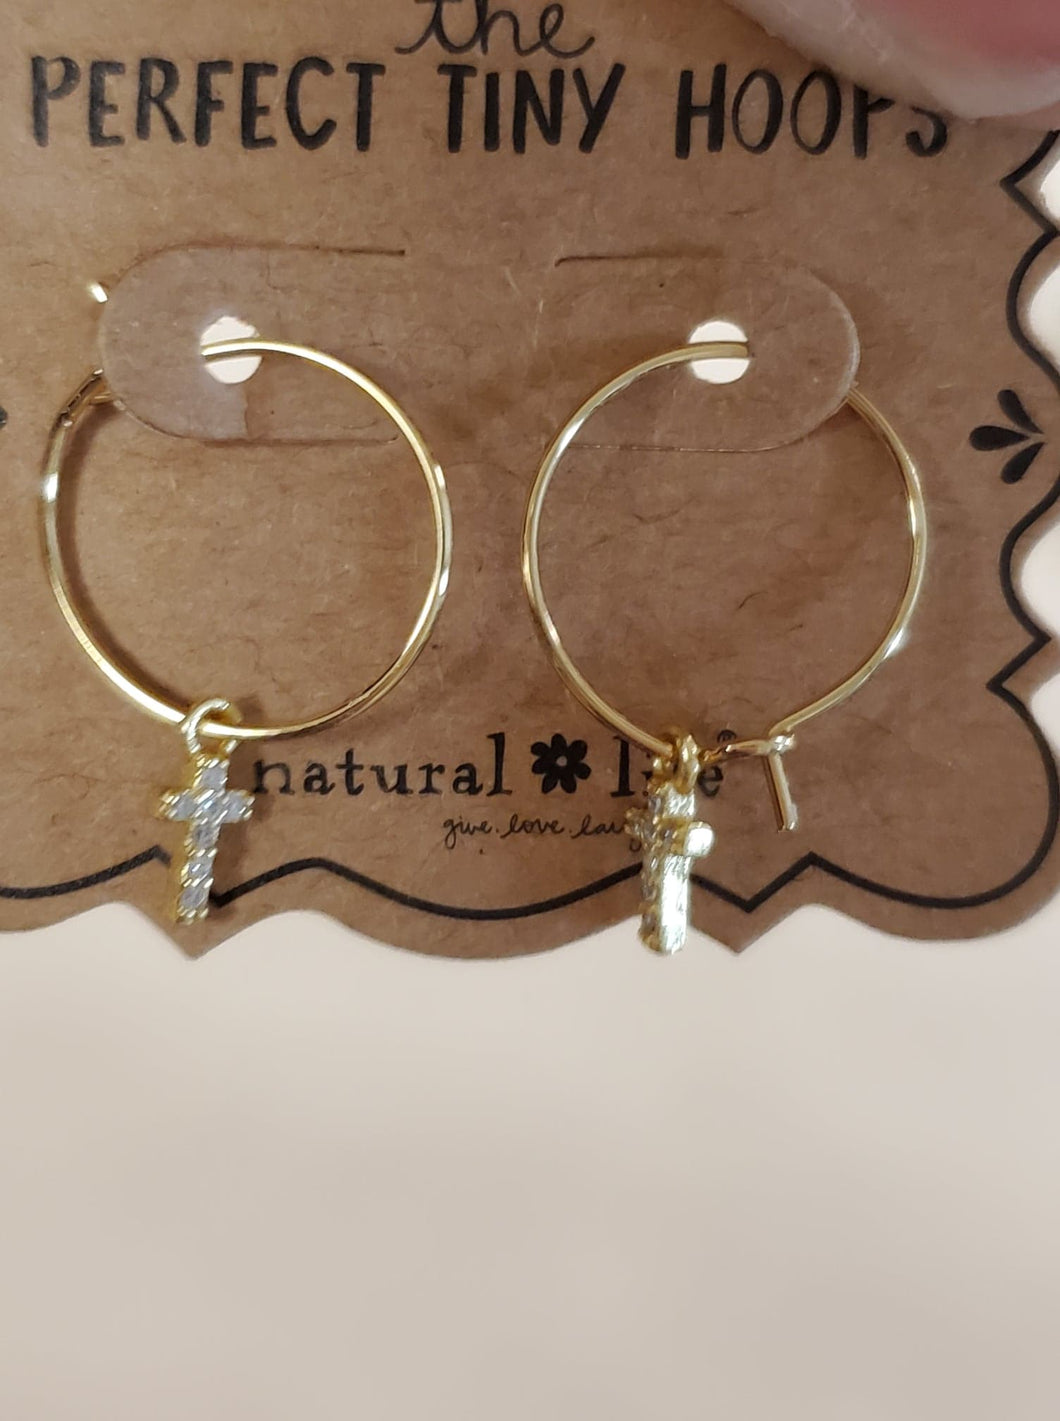 Earrings - Perfect Tiny Hoops - Cross (Natural Life)